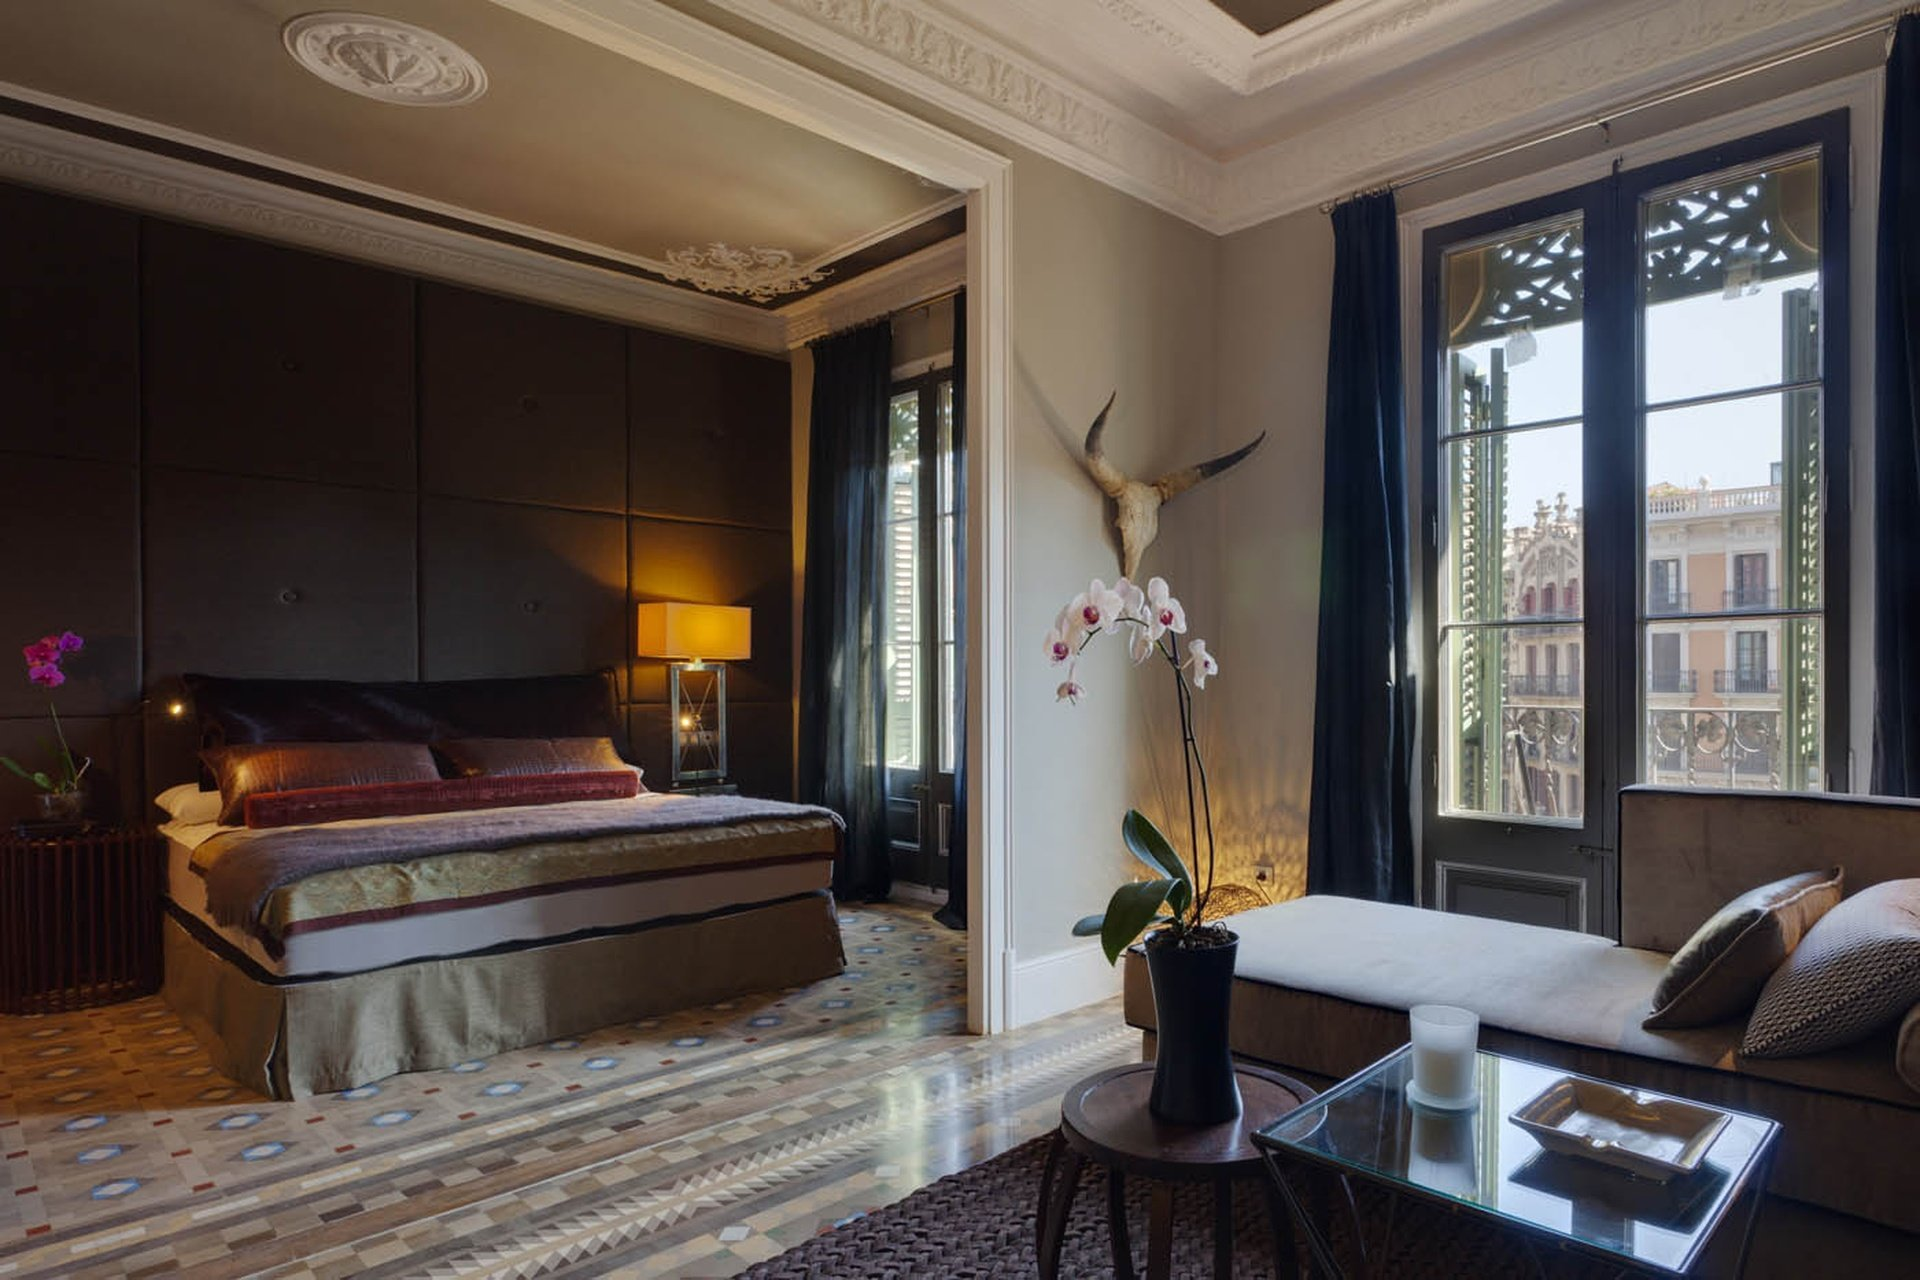 Barcelona conference rooms Private residence Suite A BCN - Apartment 203 image 0